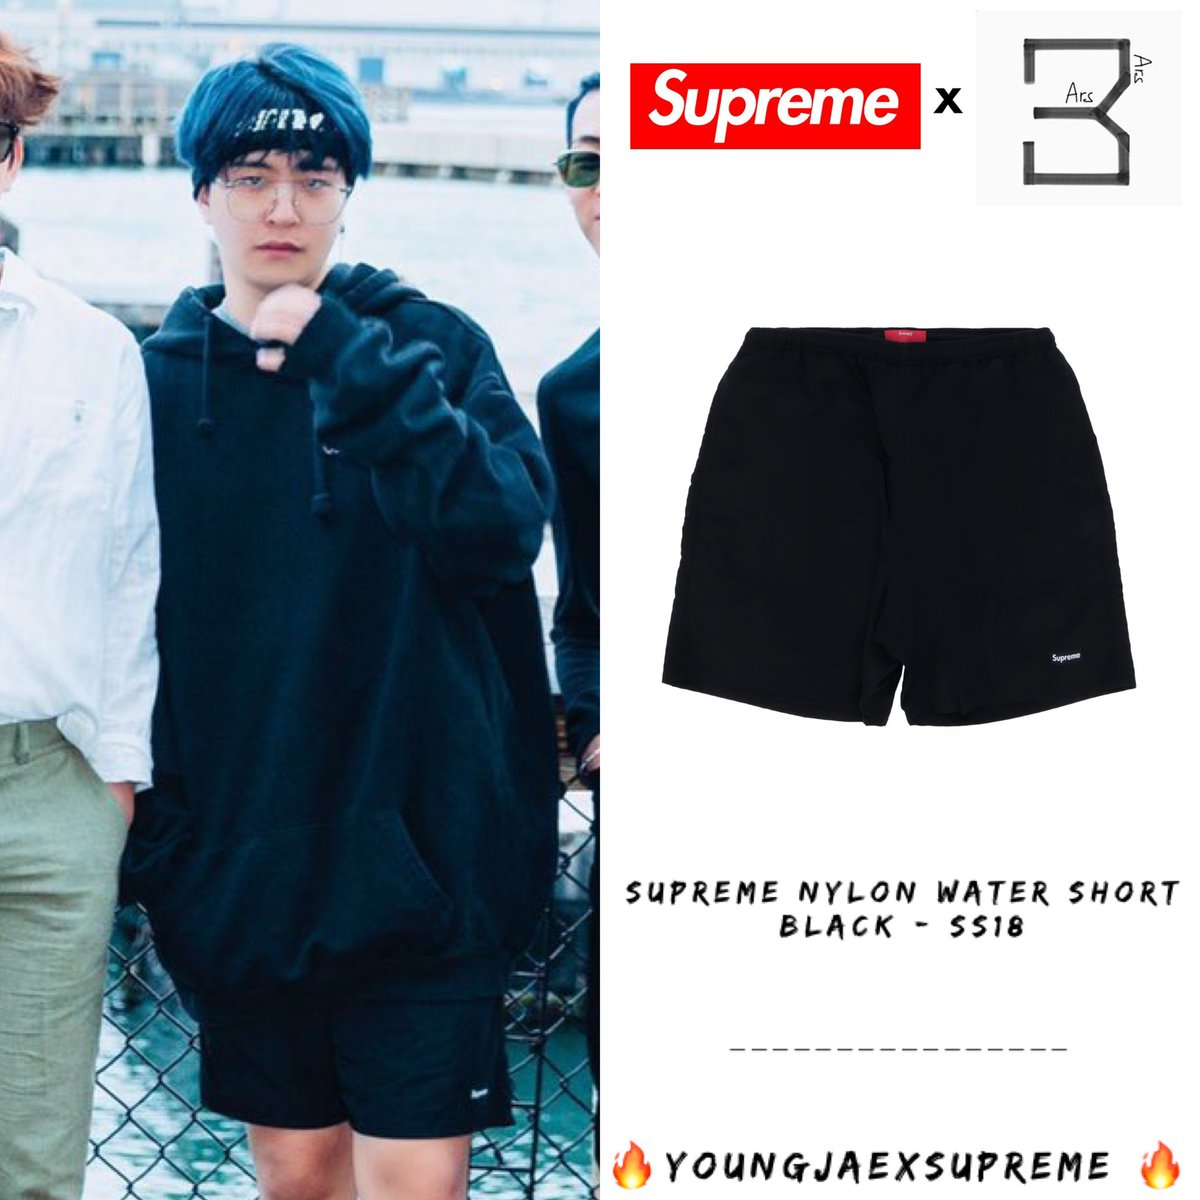 #GOT7NOW [190712] Boy : @GOTYJ_Ars_Vita   #YoungjaexSupreme  Supreme Nylon Water Short Black - SS18 $110.00 Approx THB3,367 + #Supremeboy #Youngjae  #ความยองแจ #영재<br>http://pic.twitter.com/8p3O6QhQIZ